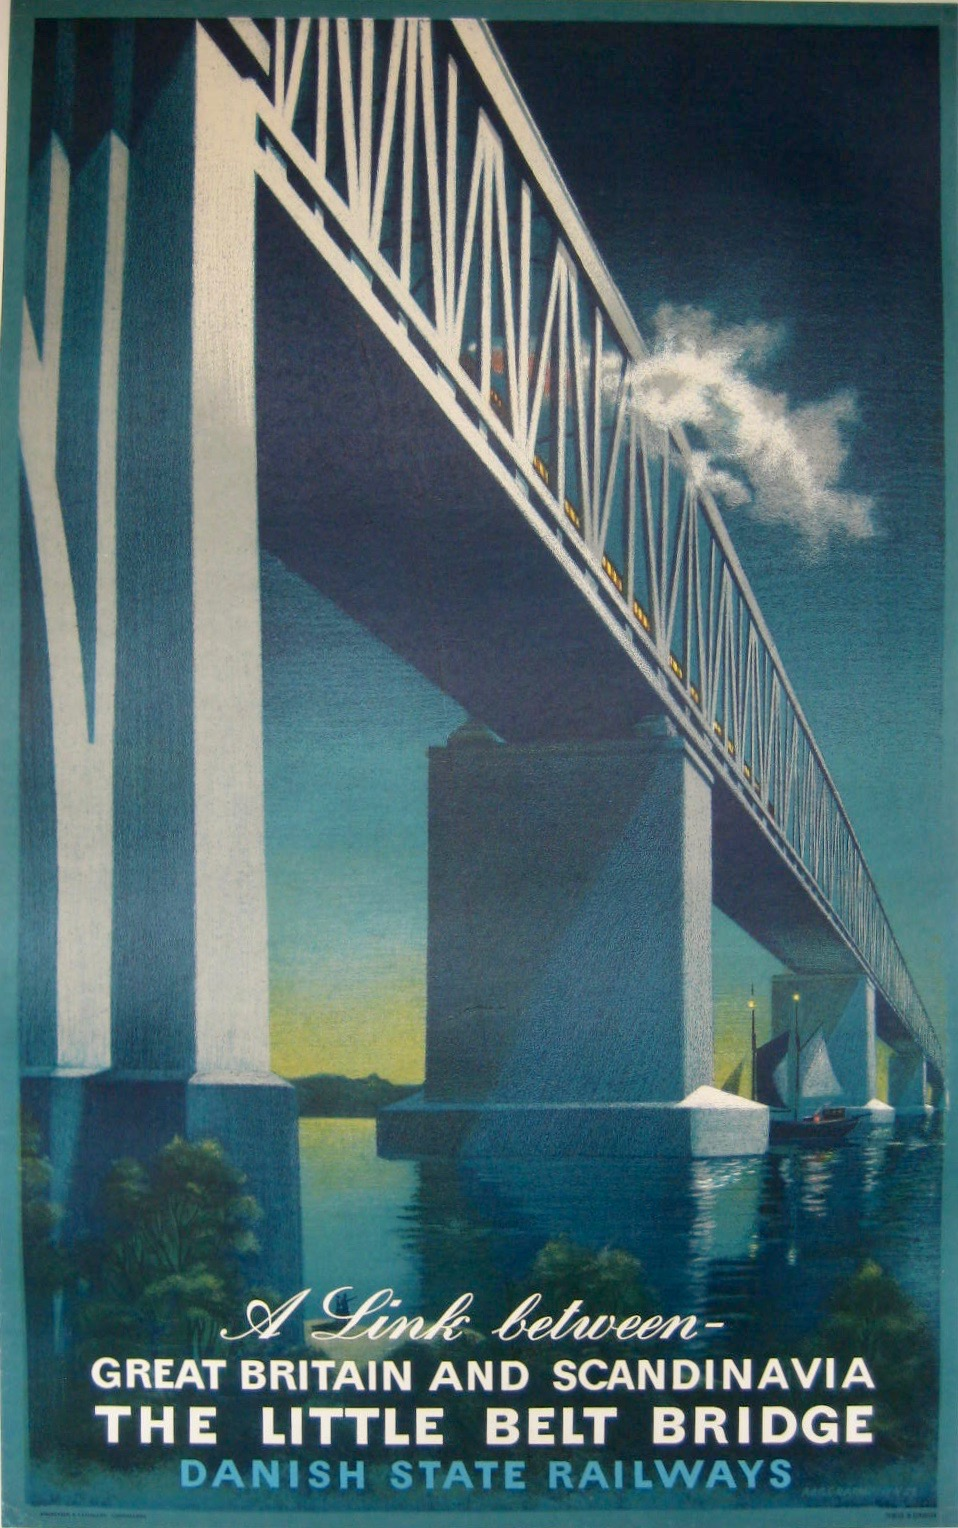 Dansih State Railways poster for Little Belt Bridge